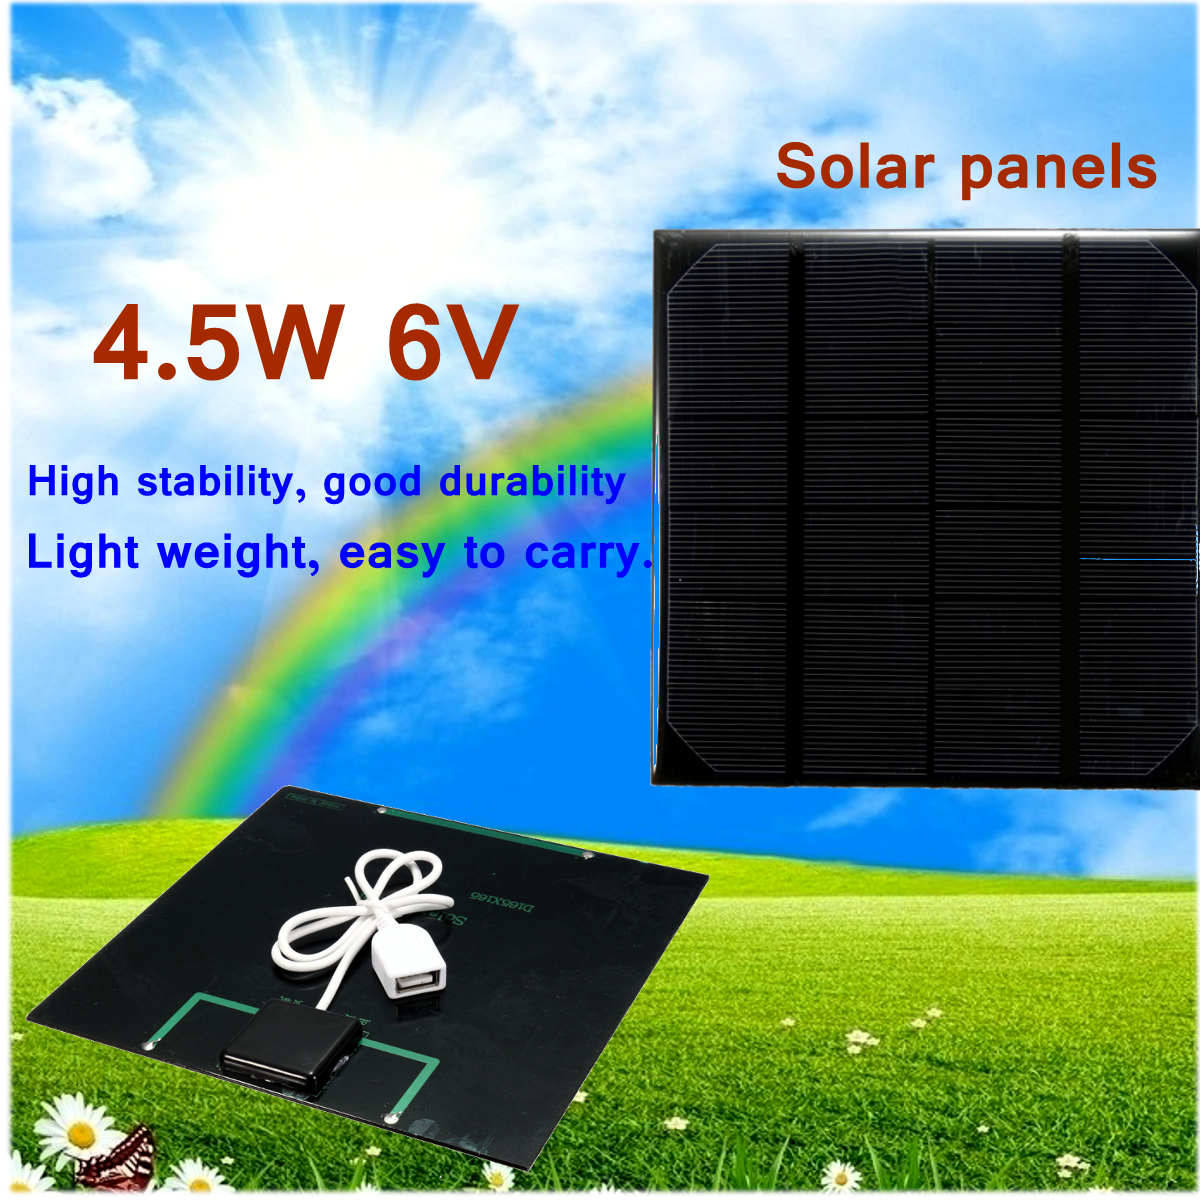 LEORY 4.5W 6V Solar Panel With USB Connection MINI DIY Battery Charger Outdoor Activity Power Bank Solar Cell And System Supply